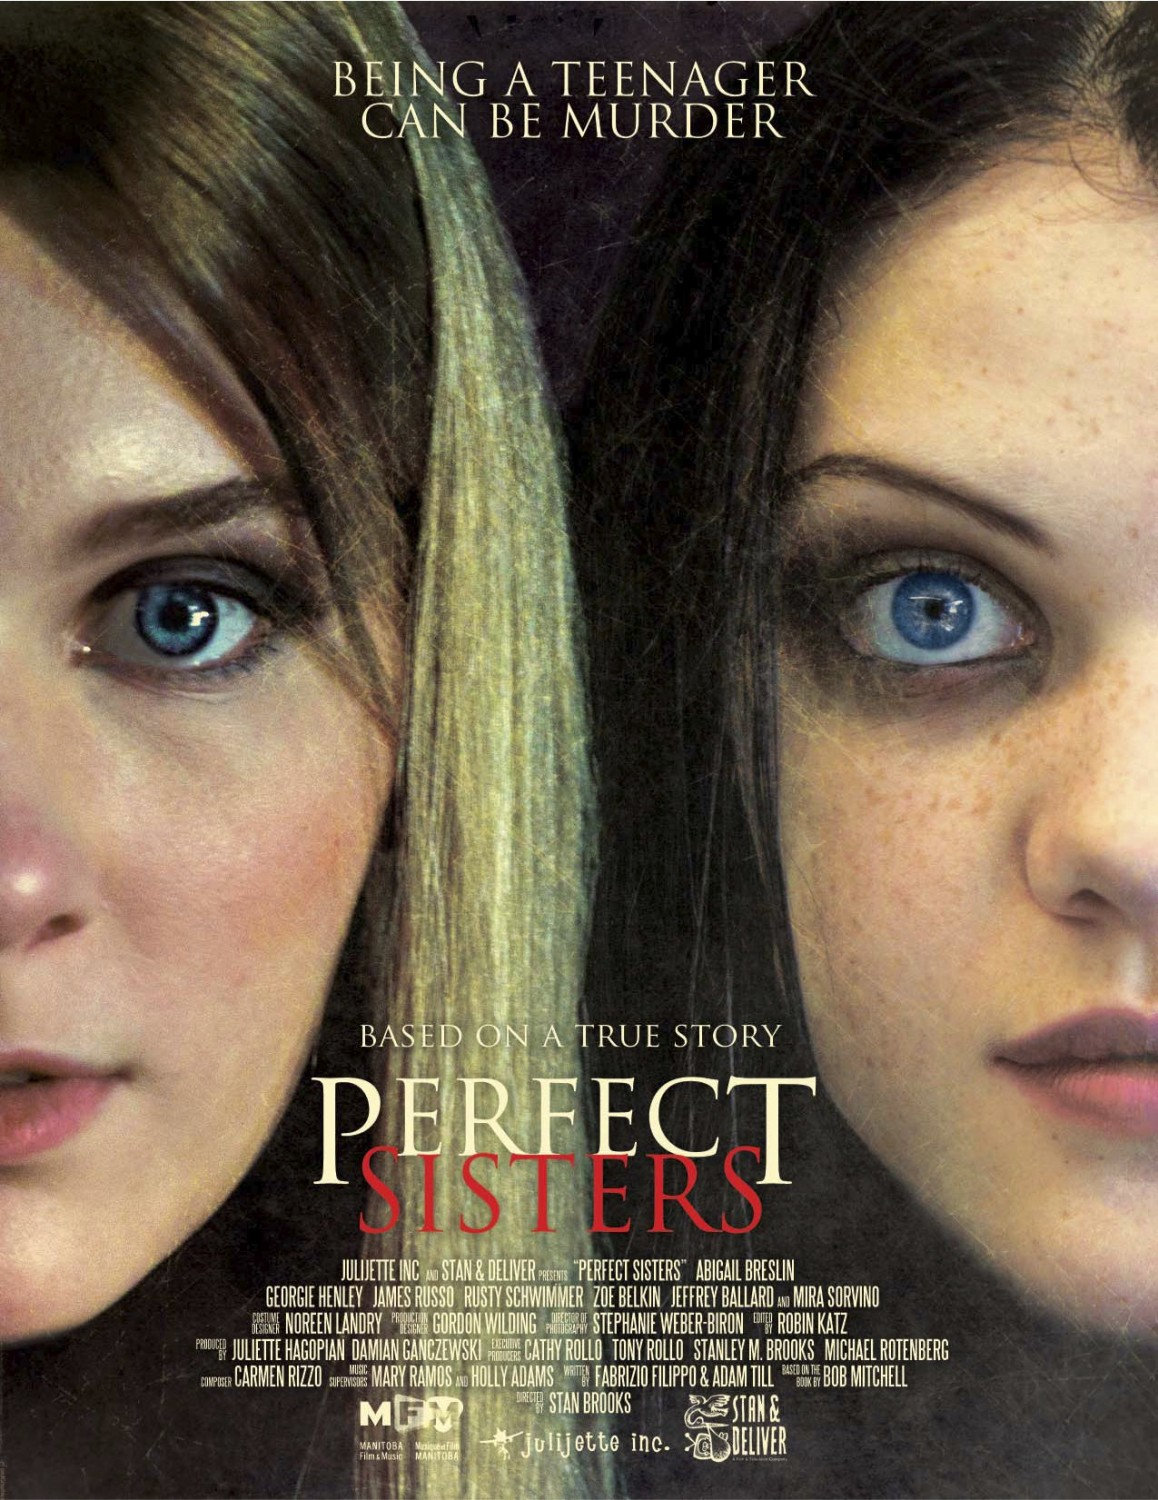 Perfect Sisters-Official Poster Banner PROMO XLG-11MARCO2014